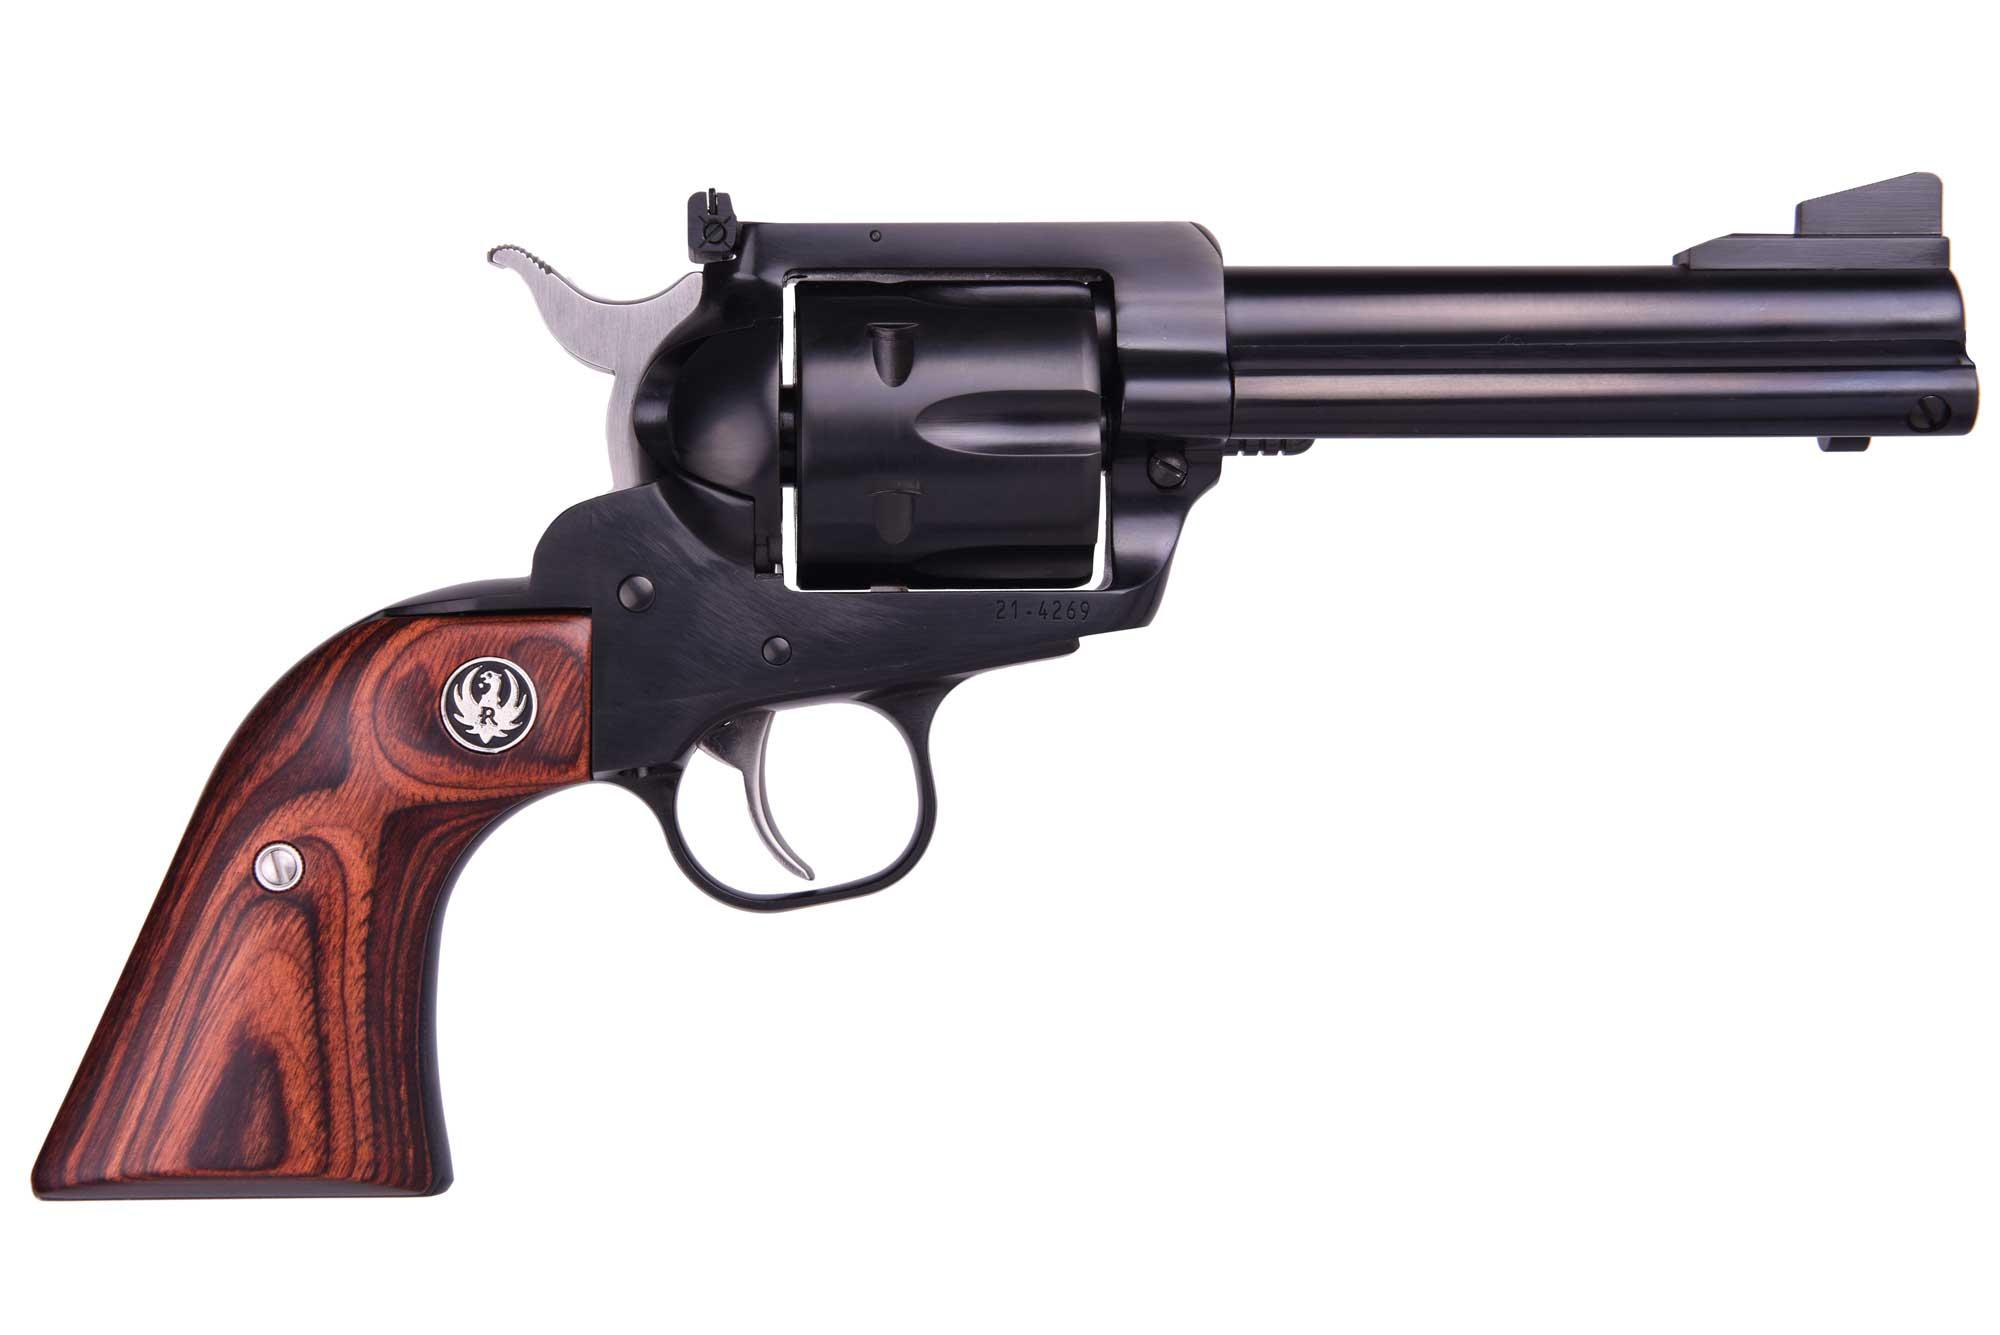 FLATTOP 357/9MM BL/WD 4-5/8AS - 5244 MID-SIZE FRAME/WOOD GRIPS